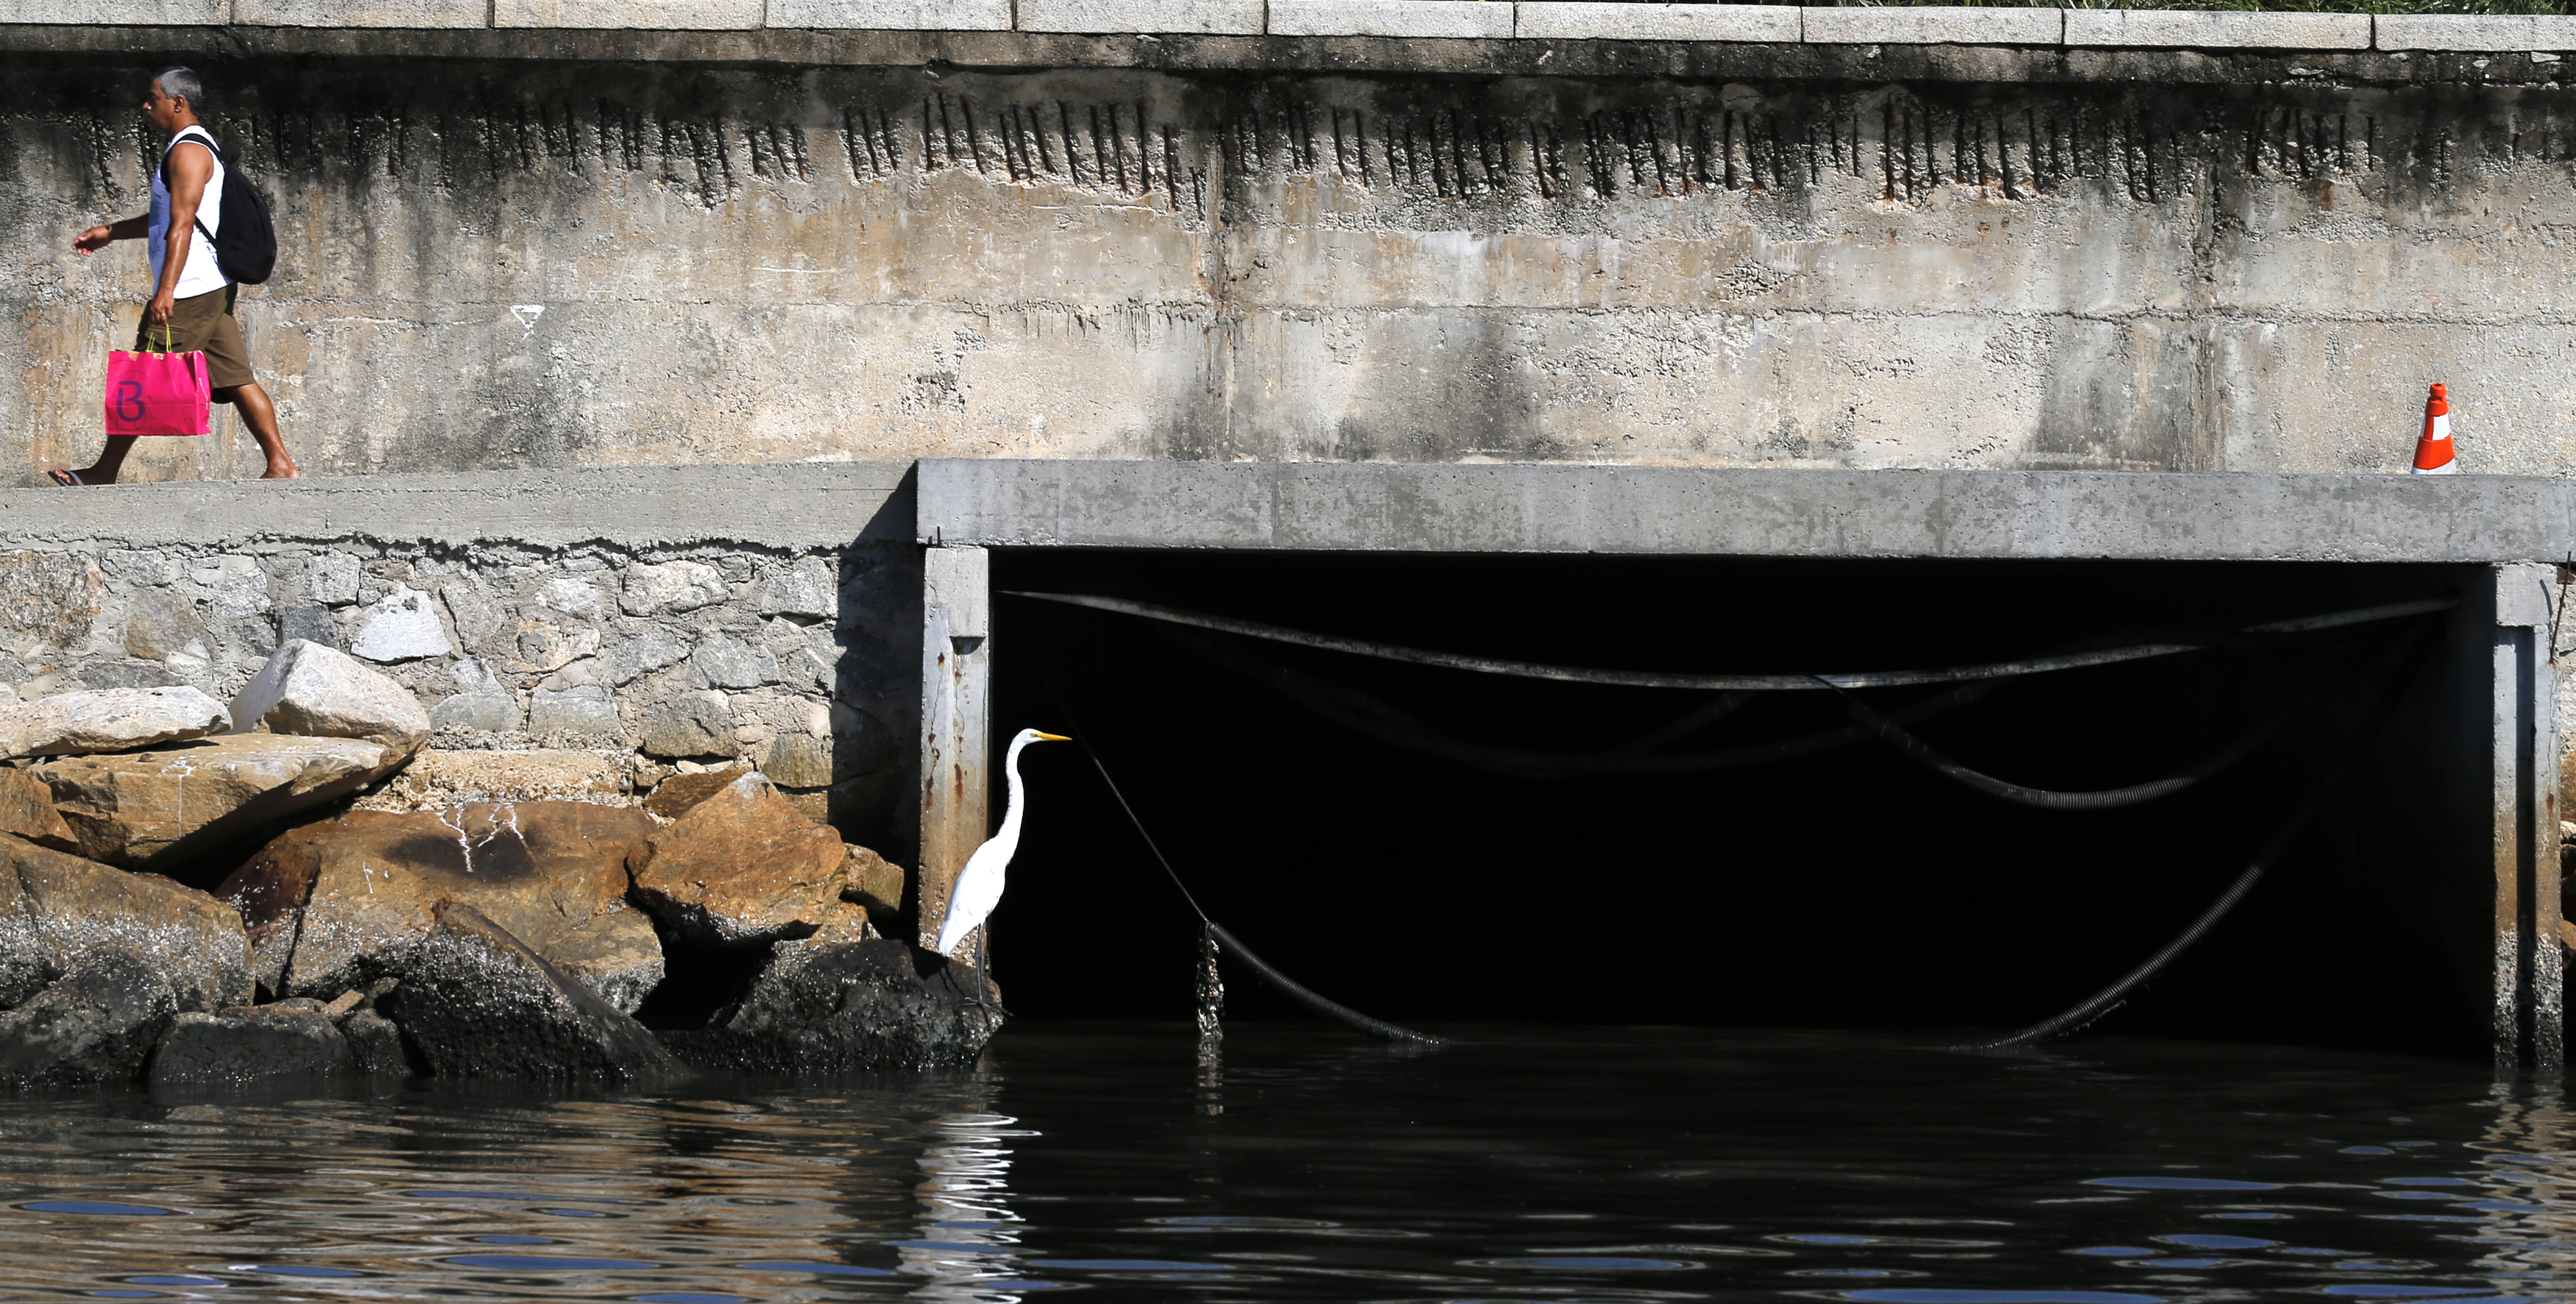 A bird sits next to a sewage canal at the Guanabara Bay in Rio de Janeiro March 12, 2014. According to the local media, the city of Rio de Janeiro continues to face criticism locally and abroad that the bodies of water it plans to use for competition in the 2016 Olympic Games are too polluted to host events. Untreated sewage and trash frequently find their way into the Atlantic waters of Copacabana Beach and Guanabara Bay - both future sites to events such as marathon swimming, sailing and triathlon events. Picture taken on March 12, 2014.